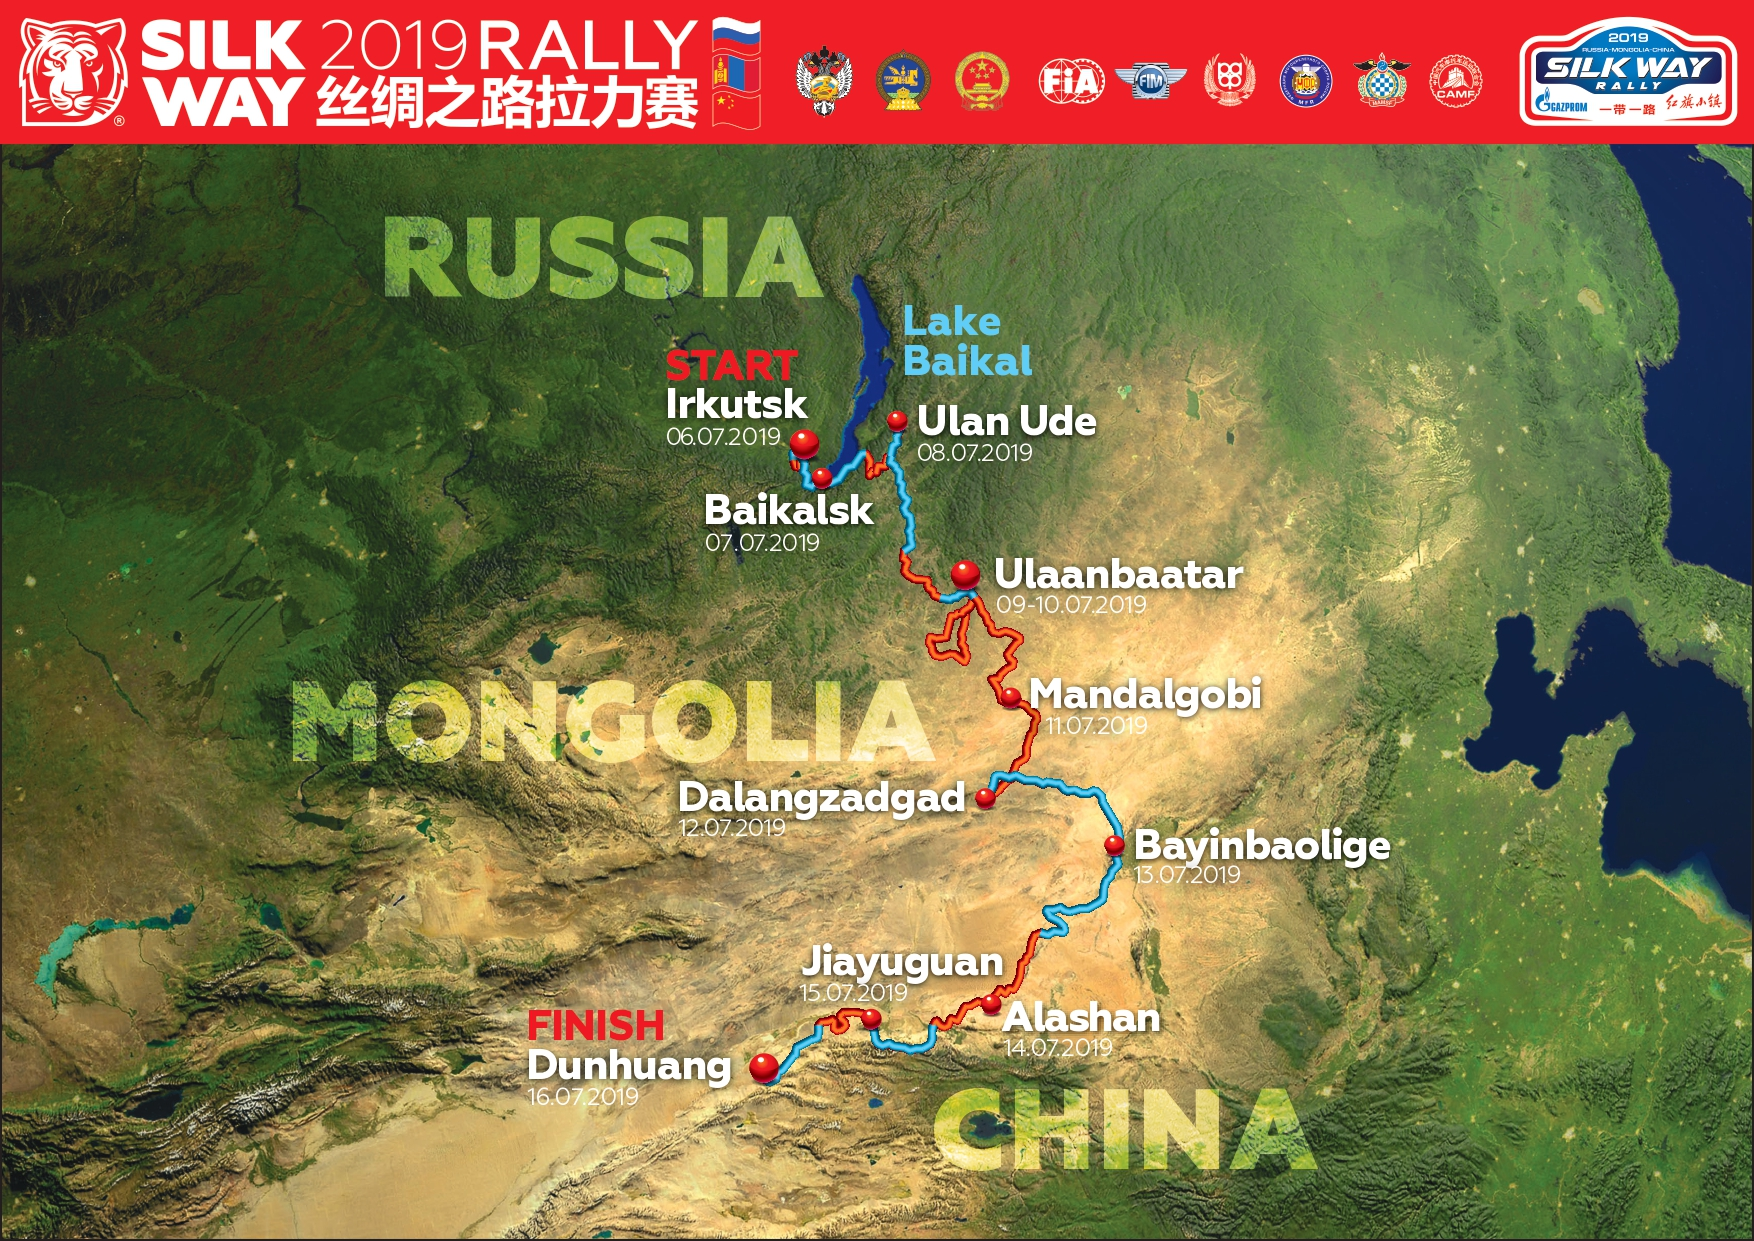 Map2019(full_route)A4.jpg